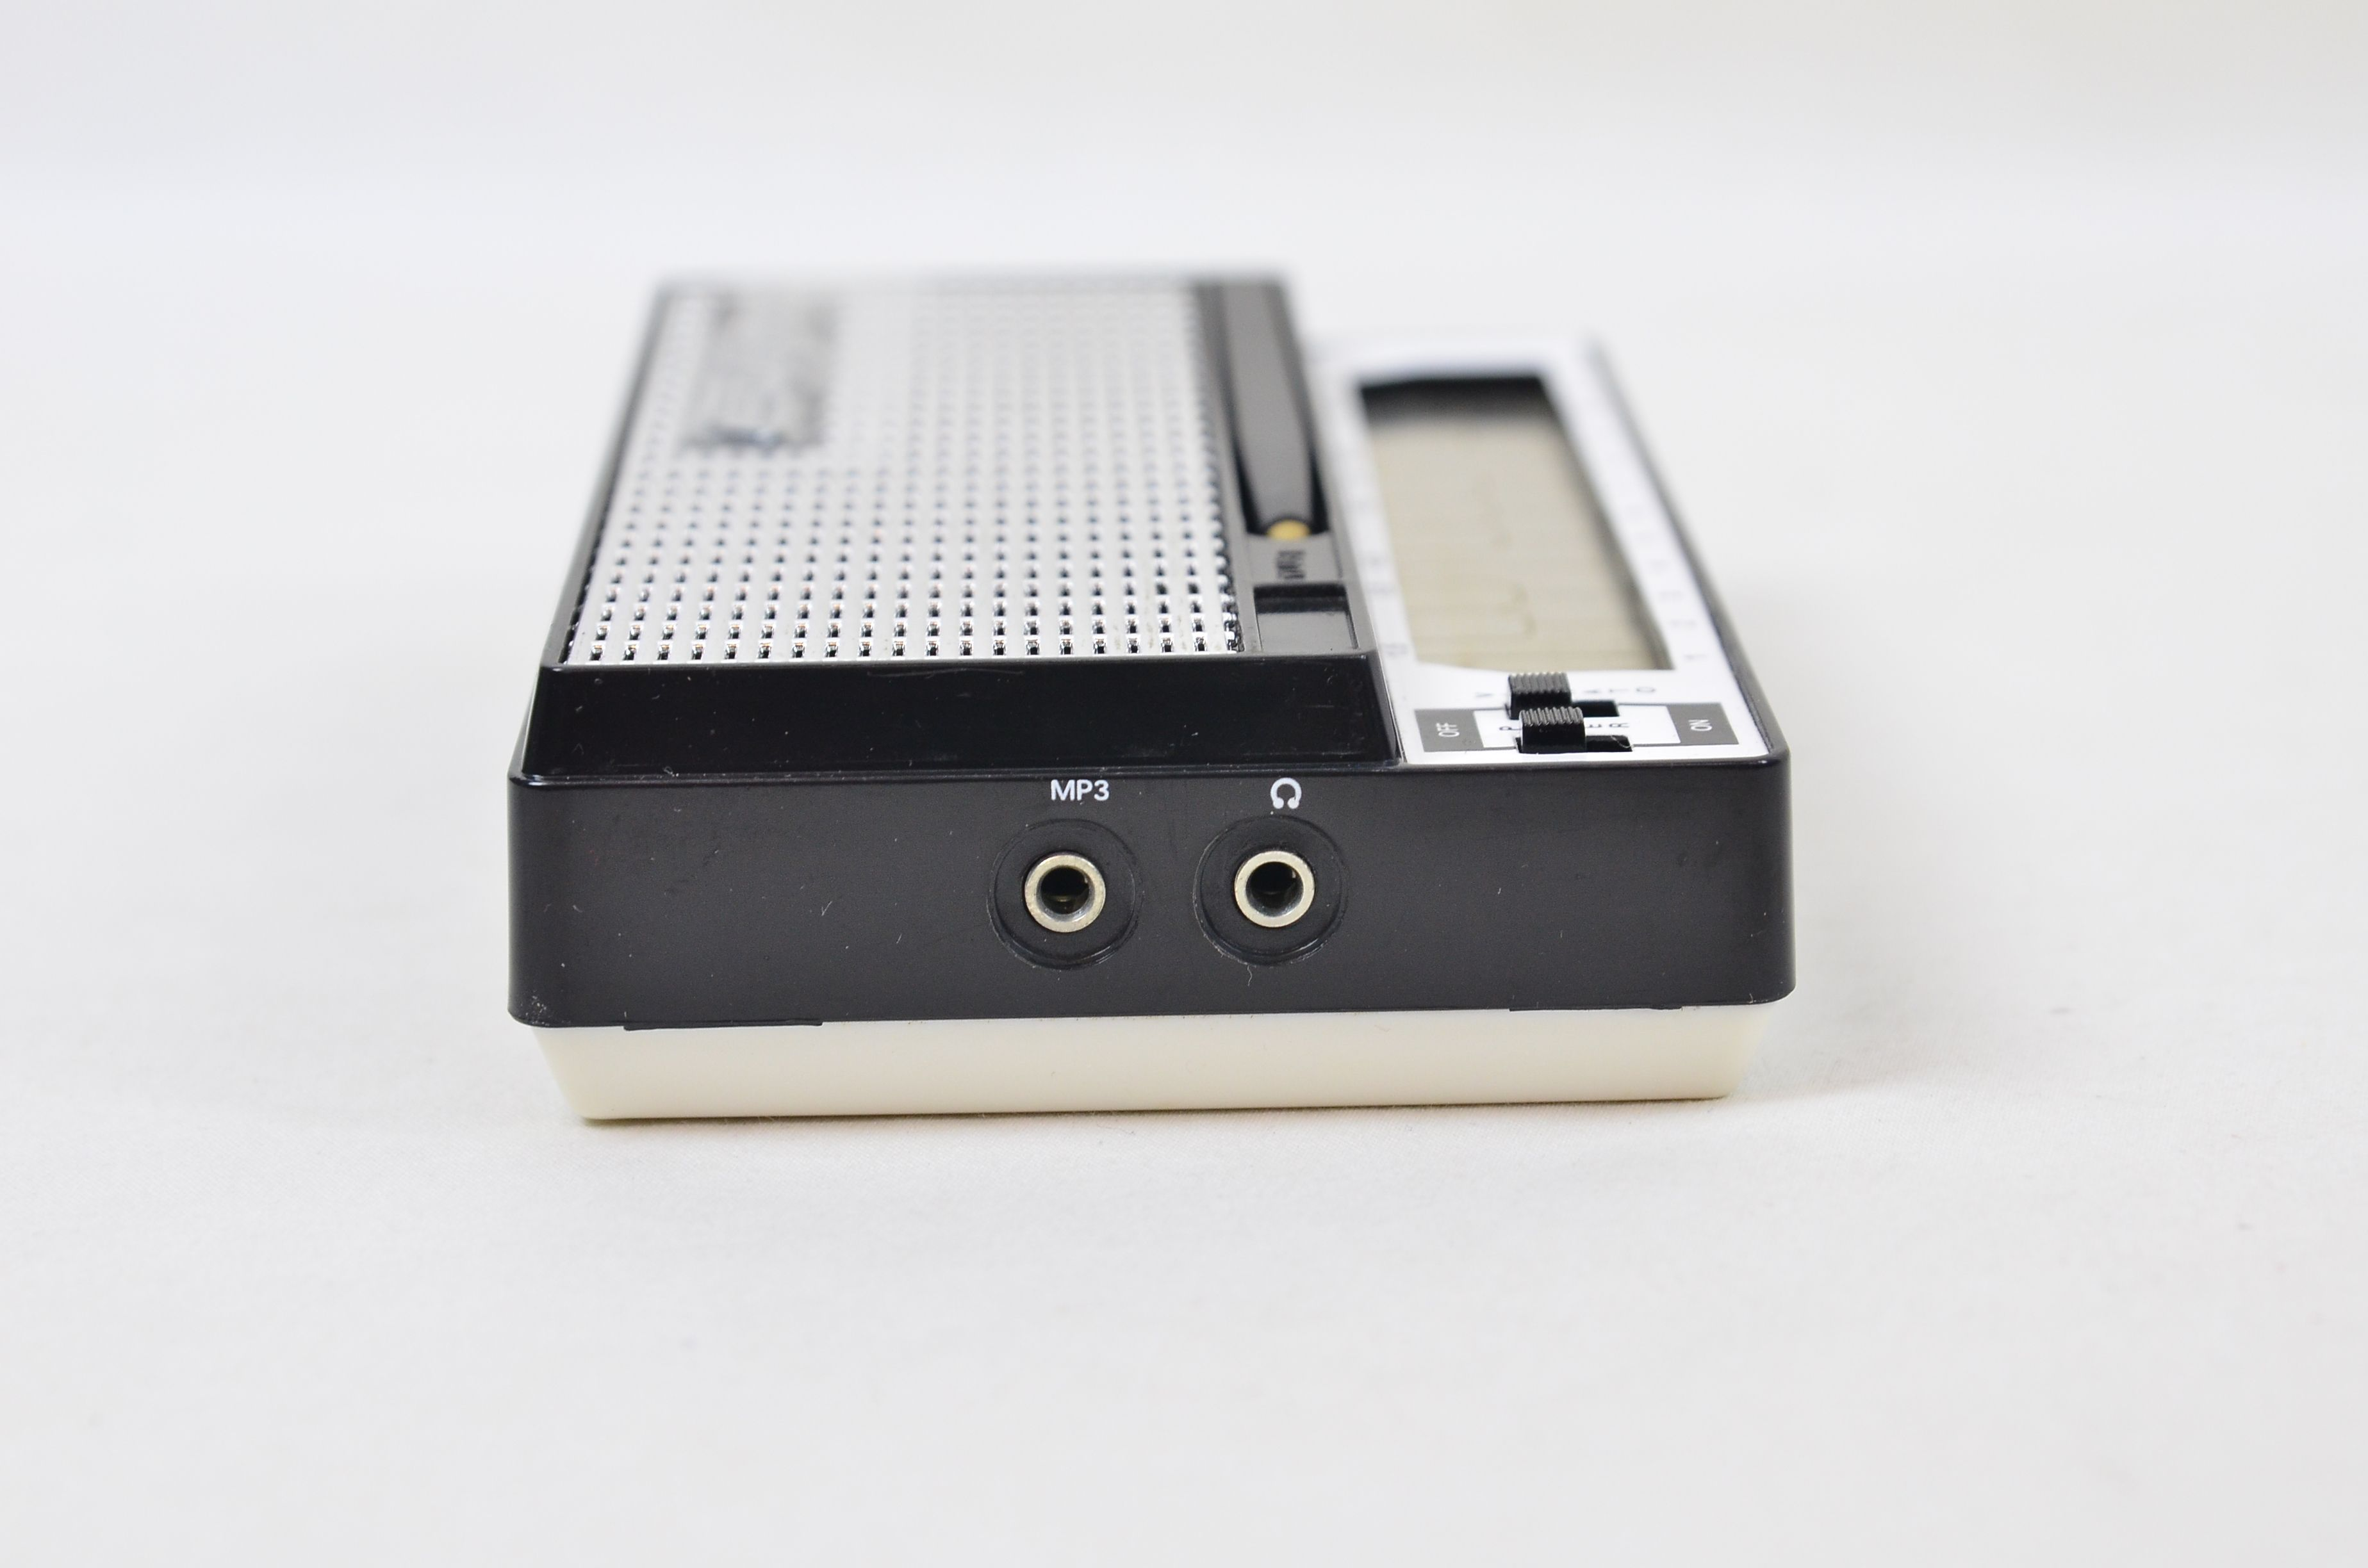 Dubreq Stylophone - The Original Pocket Synthesizer S-1 Pocket Electronic Organ Thumbnail 6